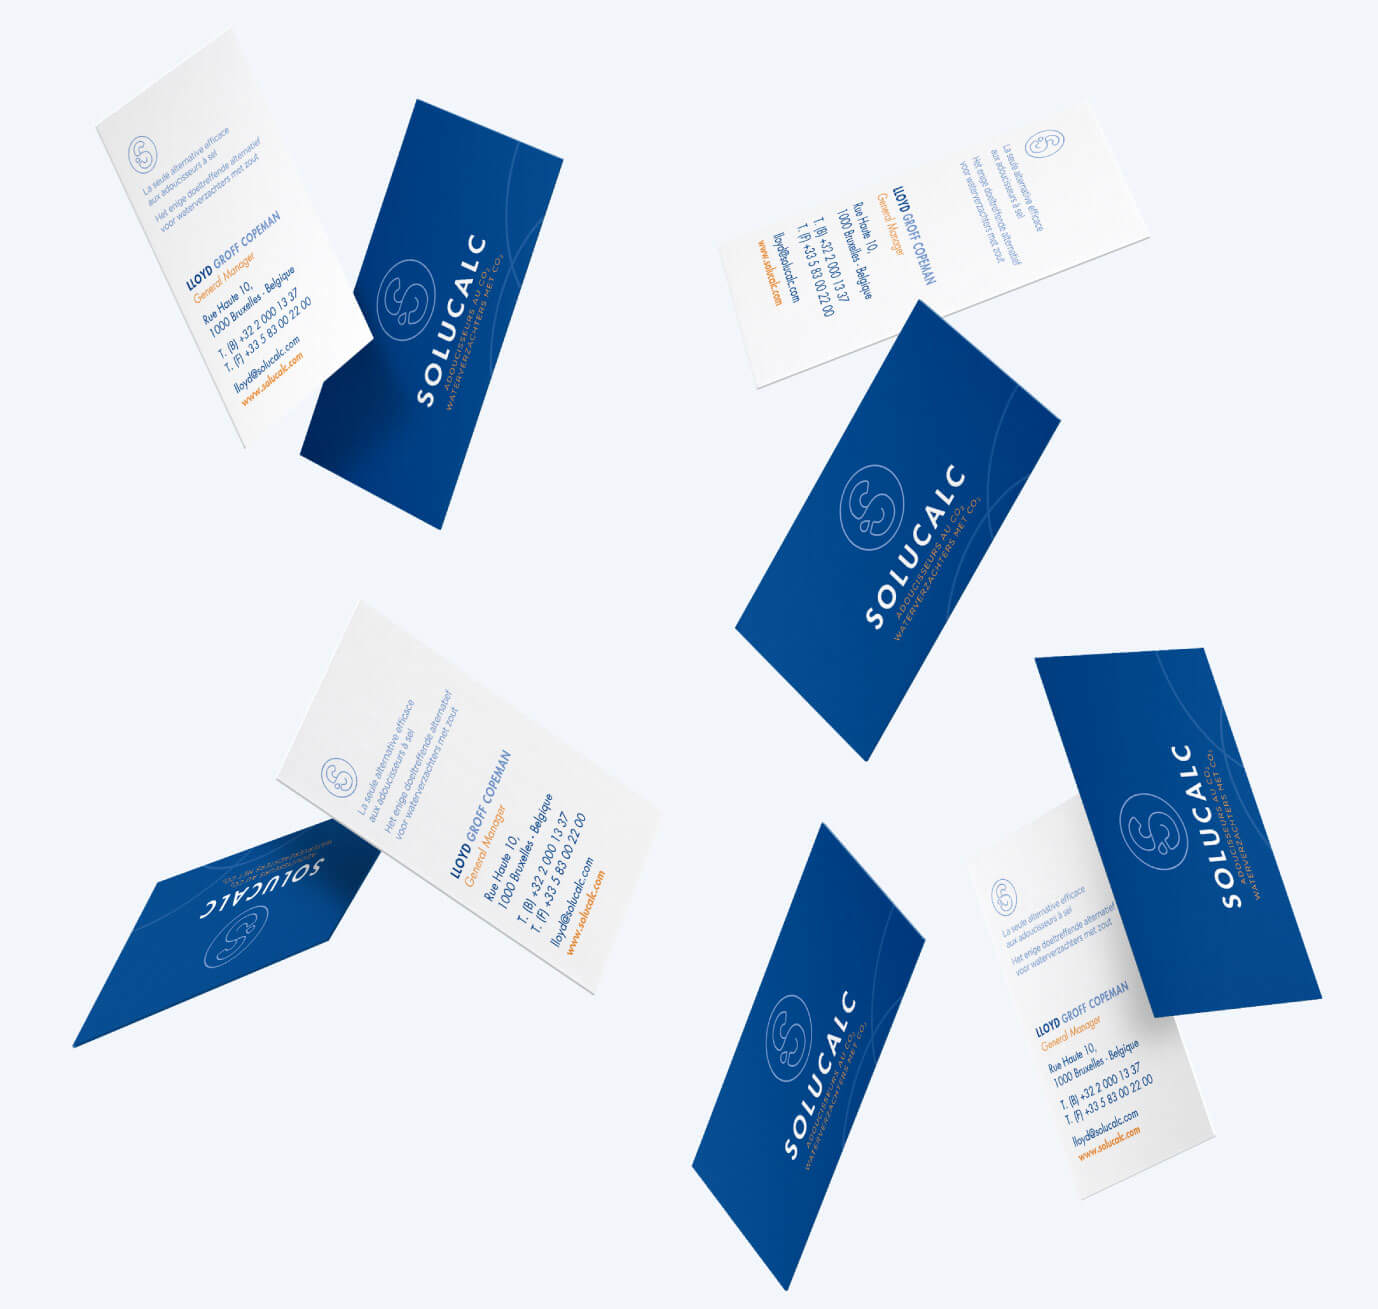 Solucalc - Branding - Business cards